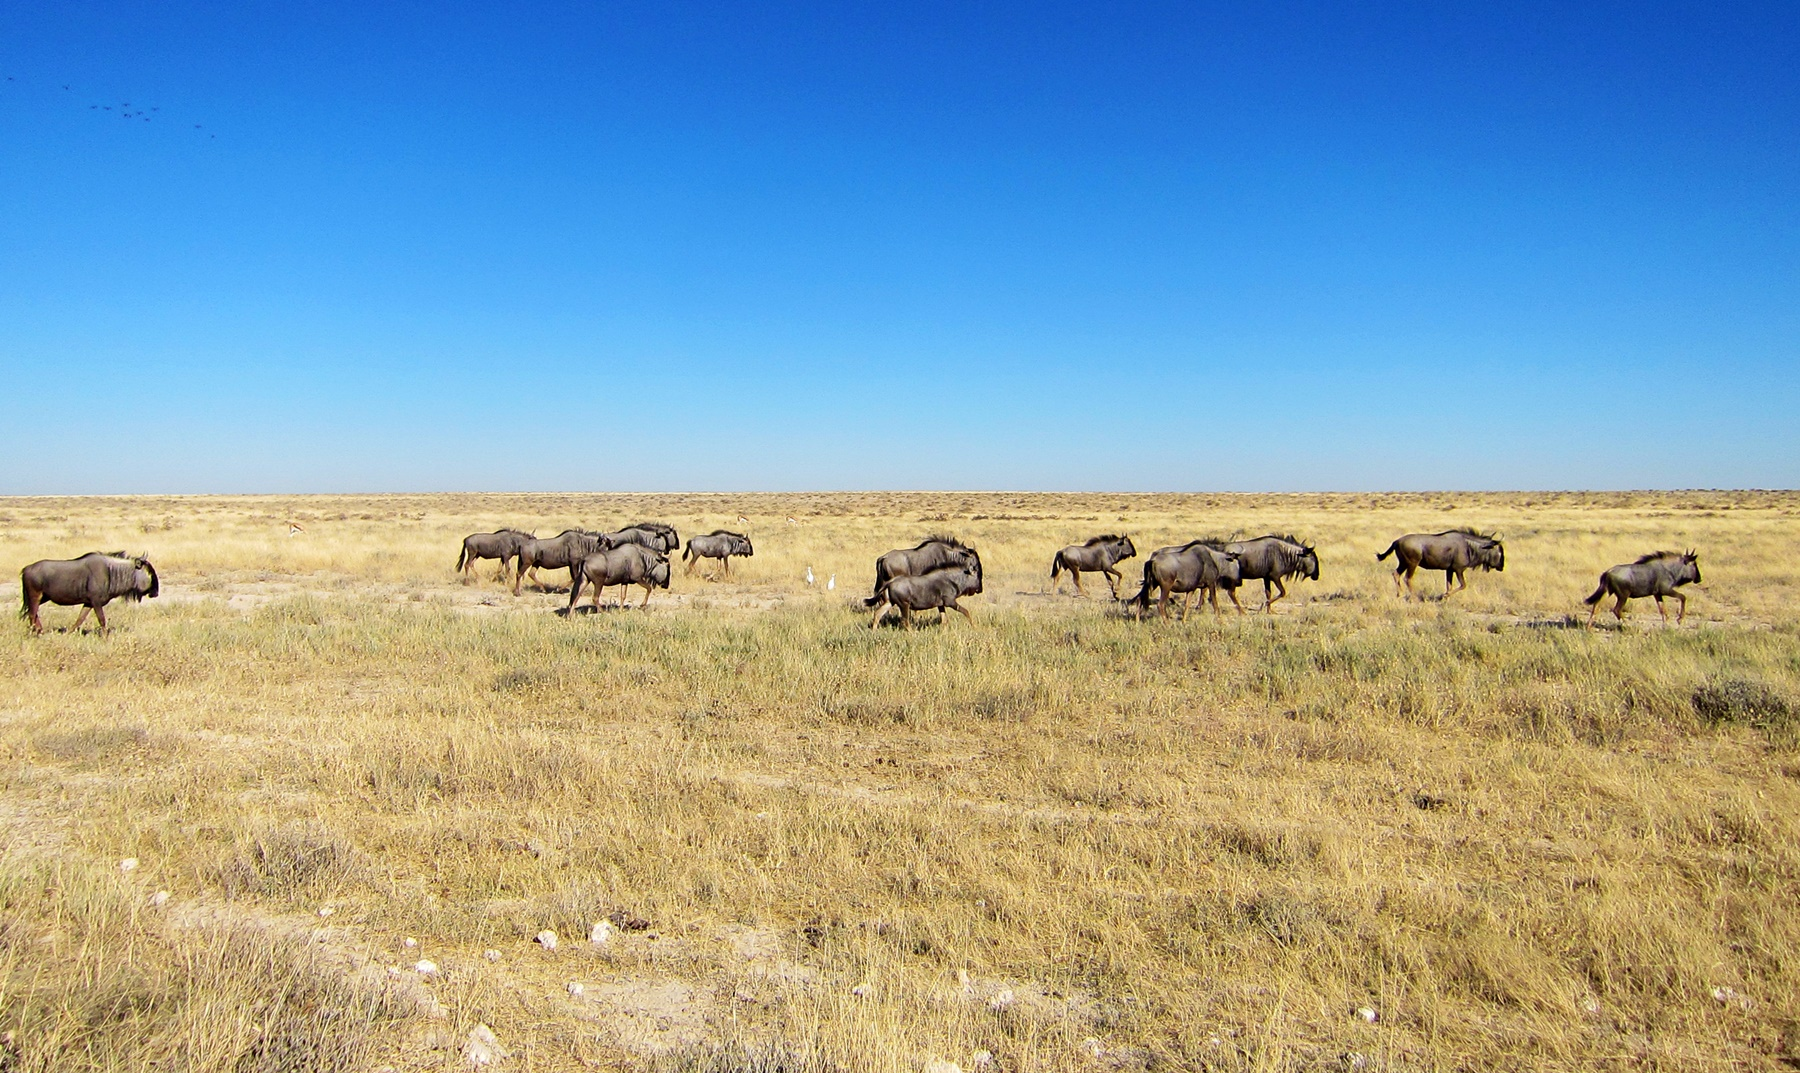 Wildebeests on a flat plain in Etosha National Park